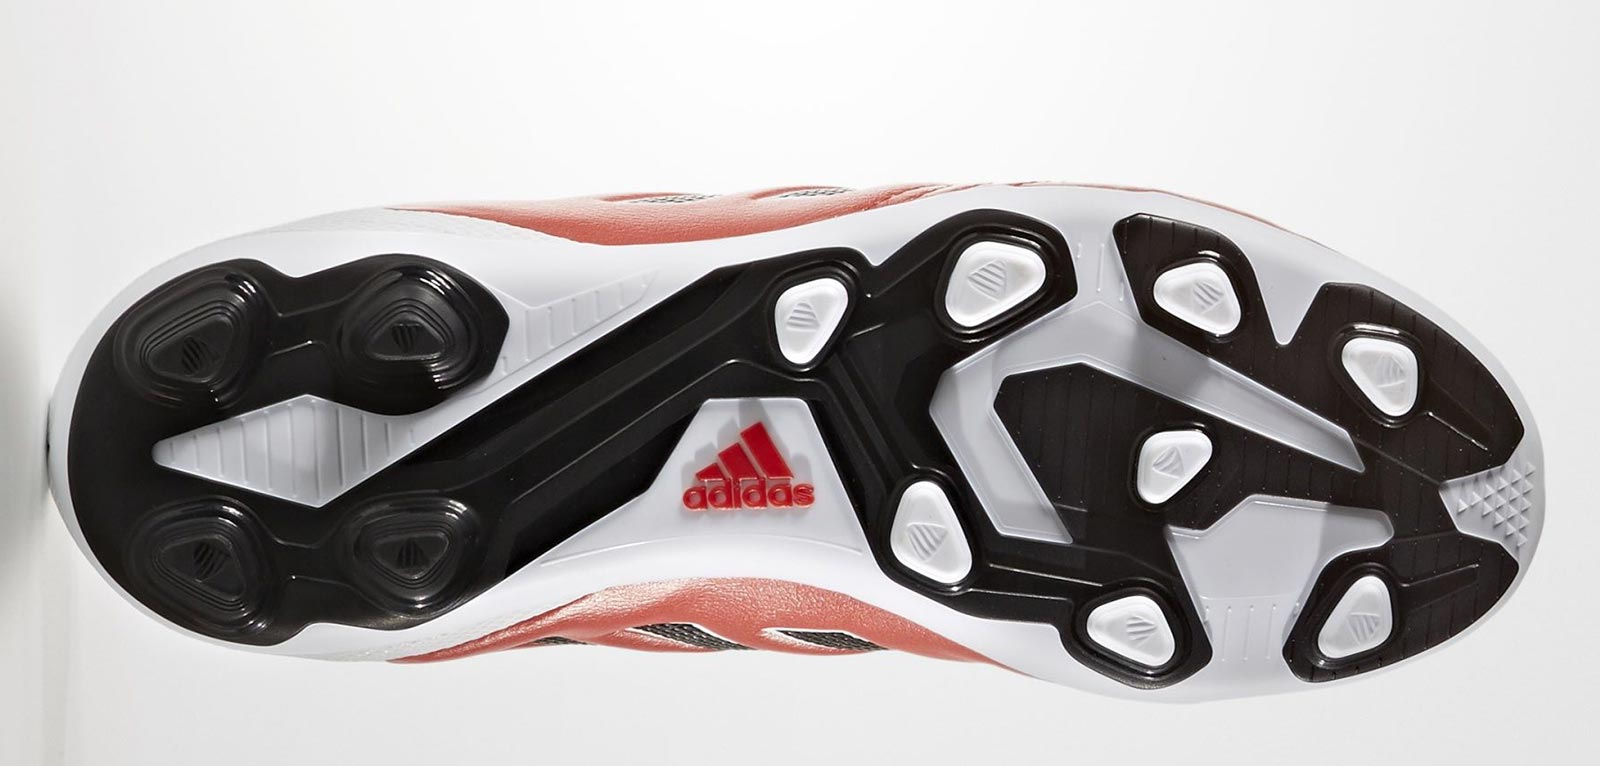 adidas-copa-17-4-soleplate